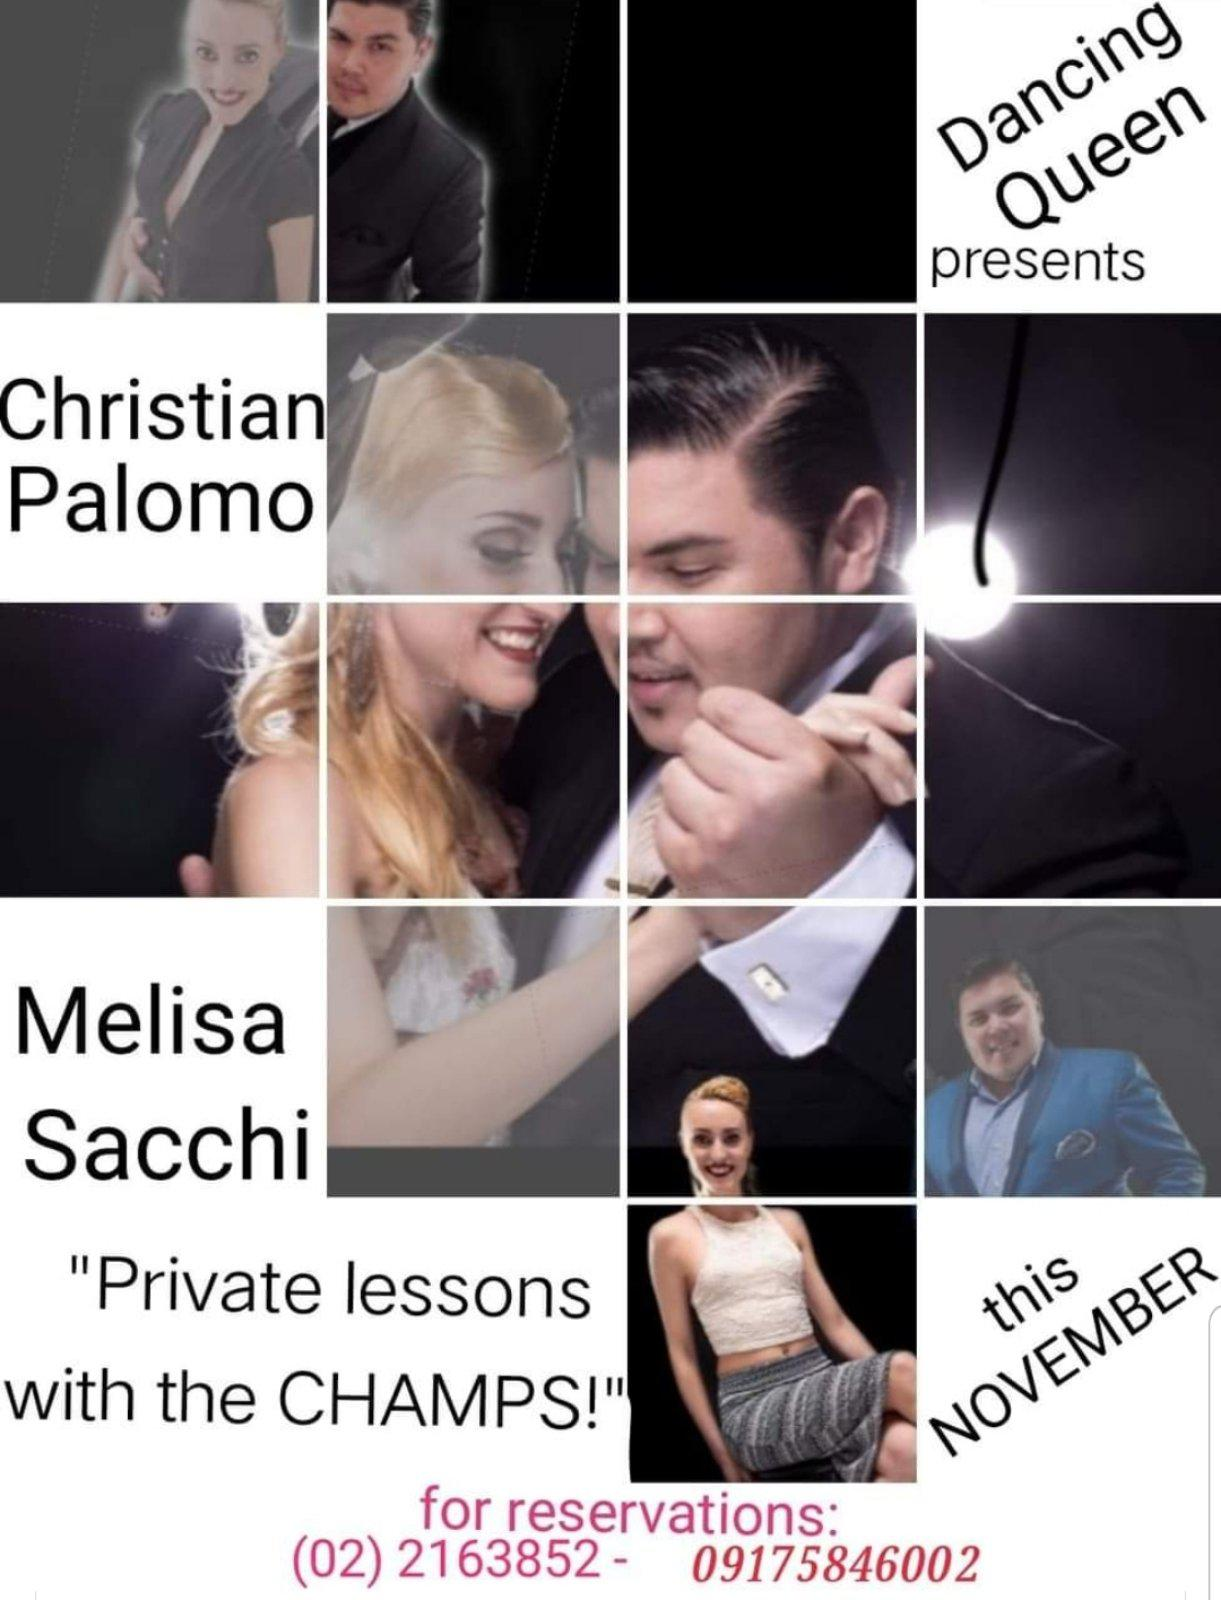 Private Argentine Tango lessons with Melisa Sacchi and Cristian Palomo. Call 0917.584.6002 for reservations